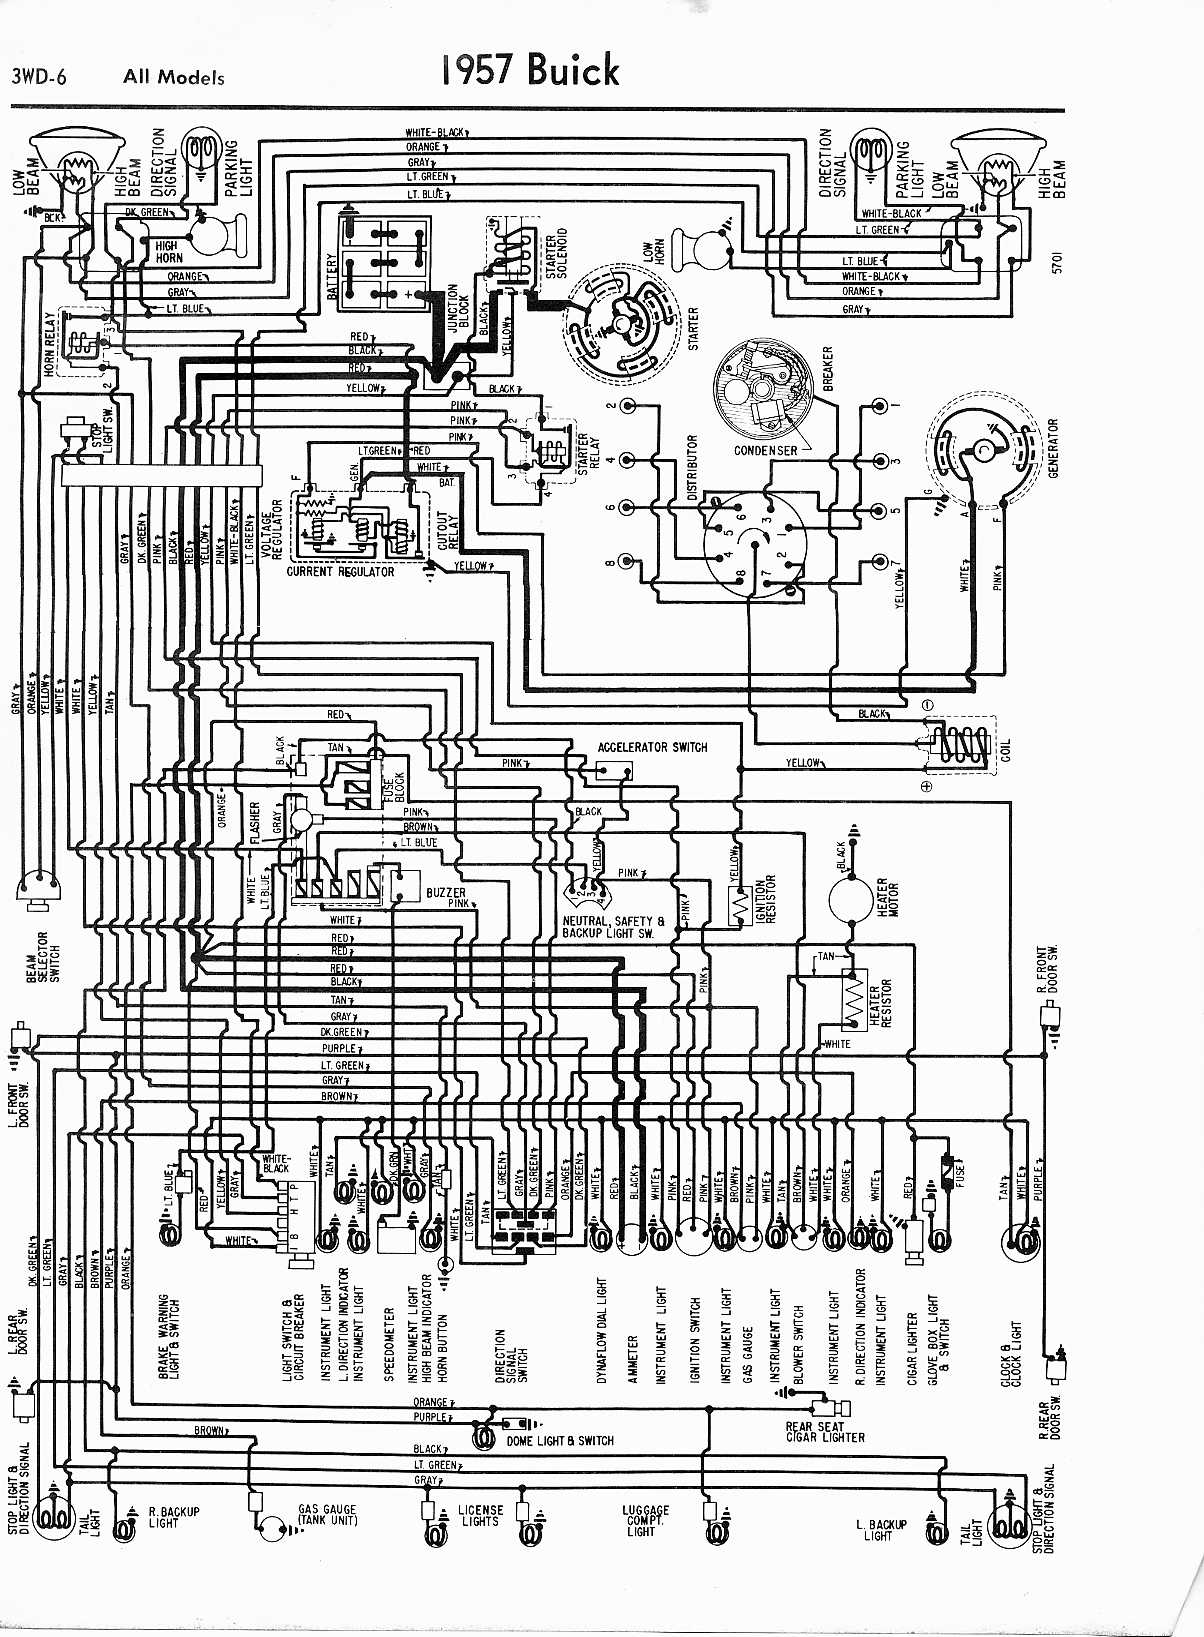 MWireBuic65_3WD 006 1965 buick riviera wiring diagram 1967 wiring diagram simonand 1957 buick special fuse box location at panicattacktreatment.co